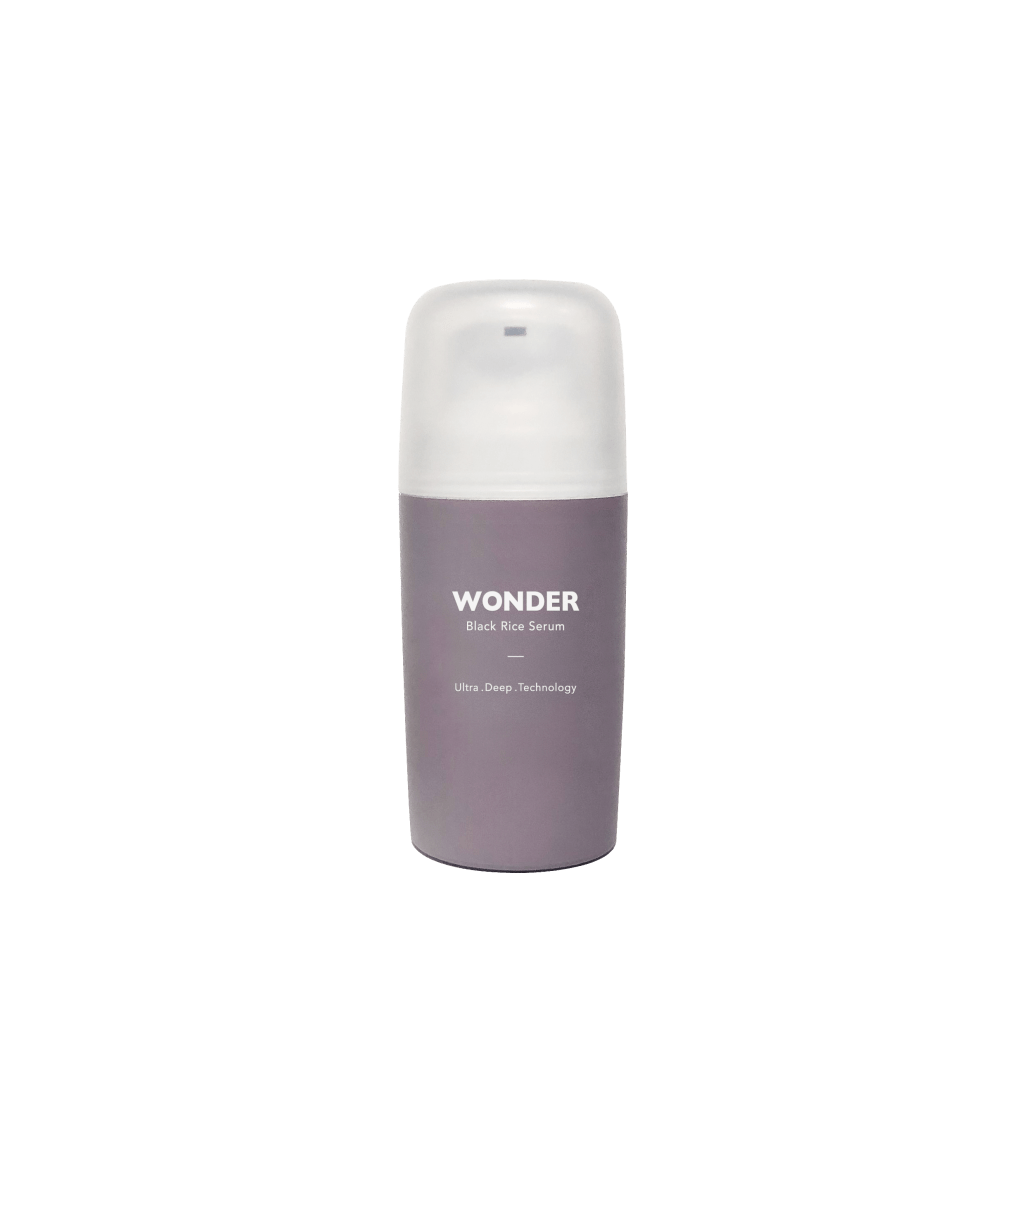 WONDER Black Rice Serum 30ml